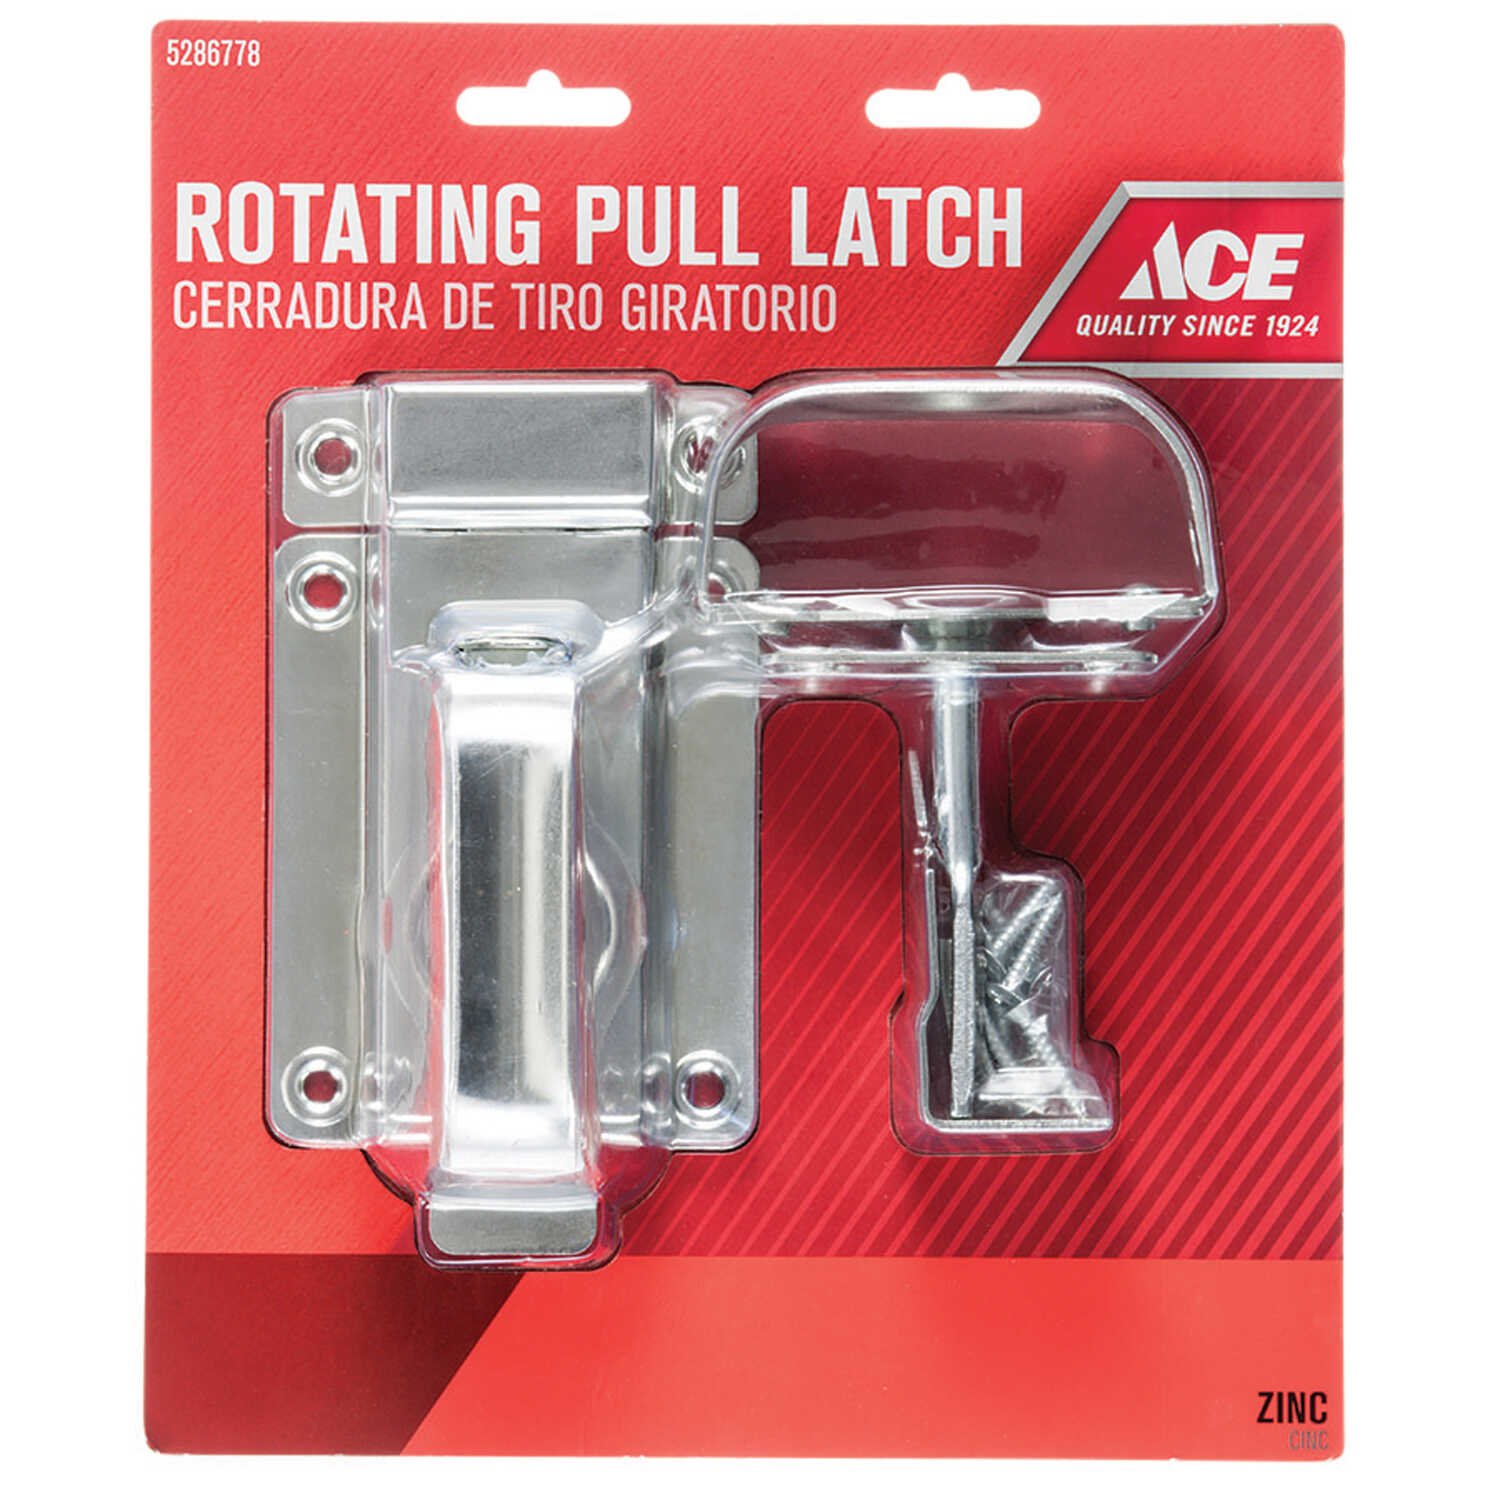 Ace  10.52 in. H x 8.75 in. W x 2.92 in. L Zinc-Plated  Metallic  Zinc  Gate Latch Pull